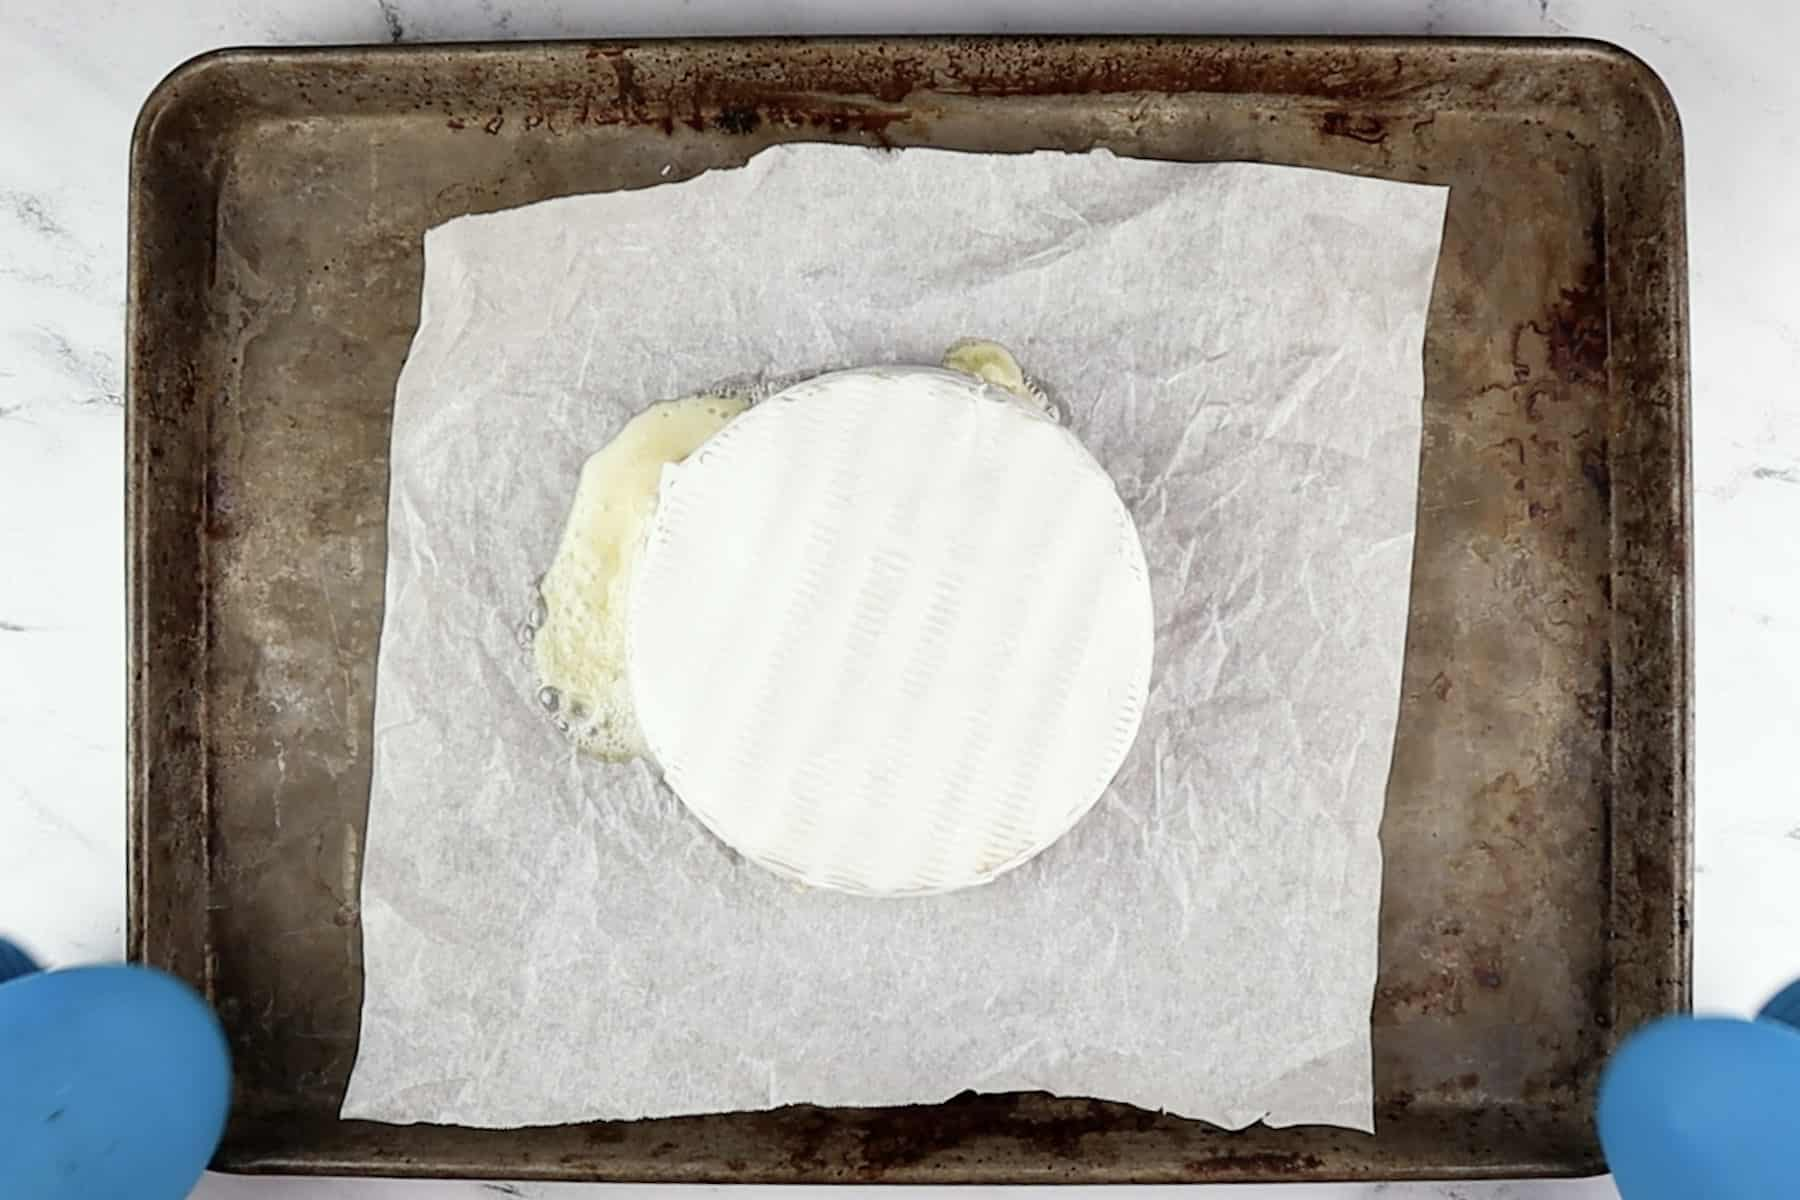 brie baked and still on baking sheet